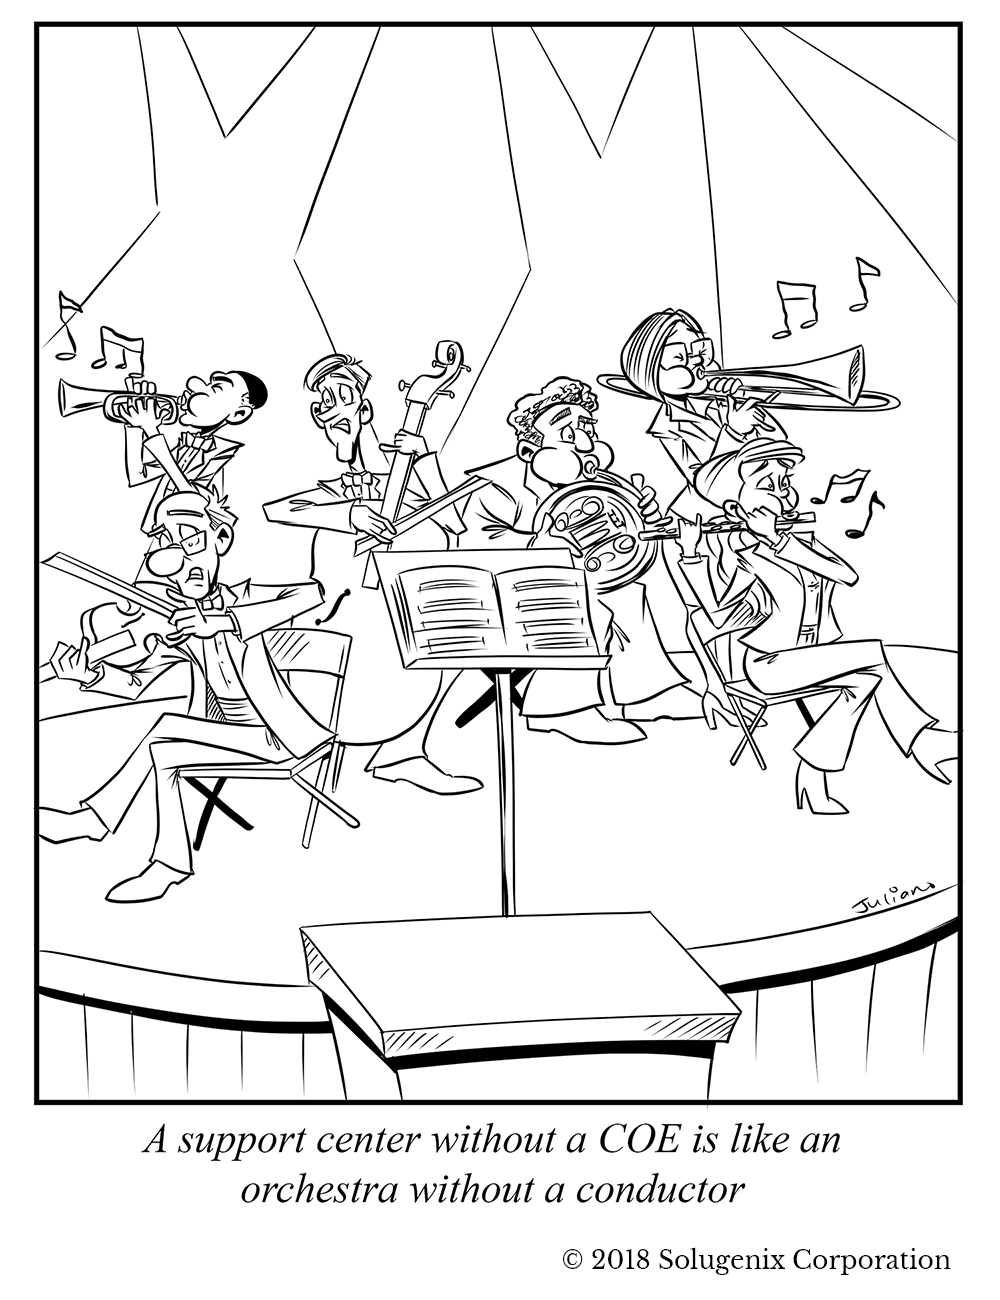 Conductor-less Orchestra Comic_wCaption1000x1300